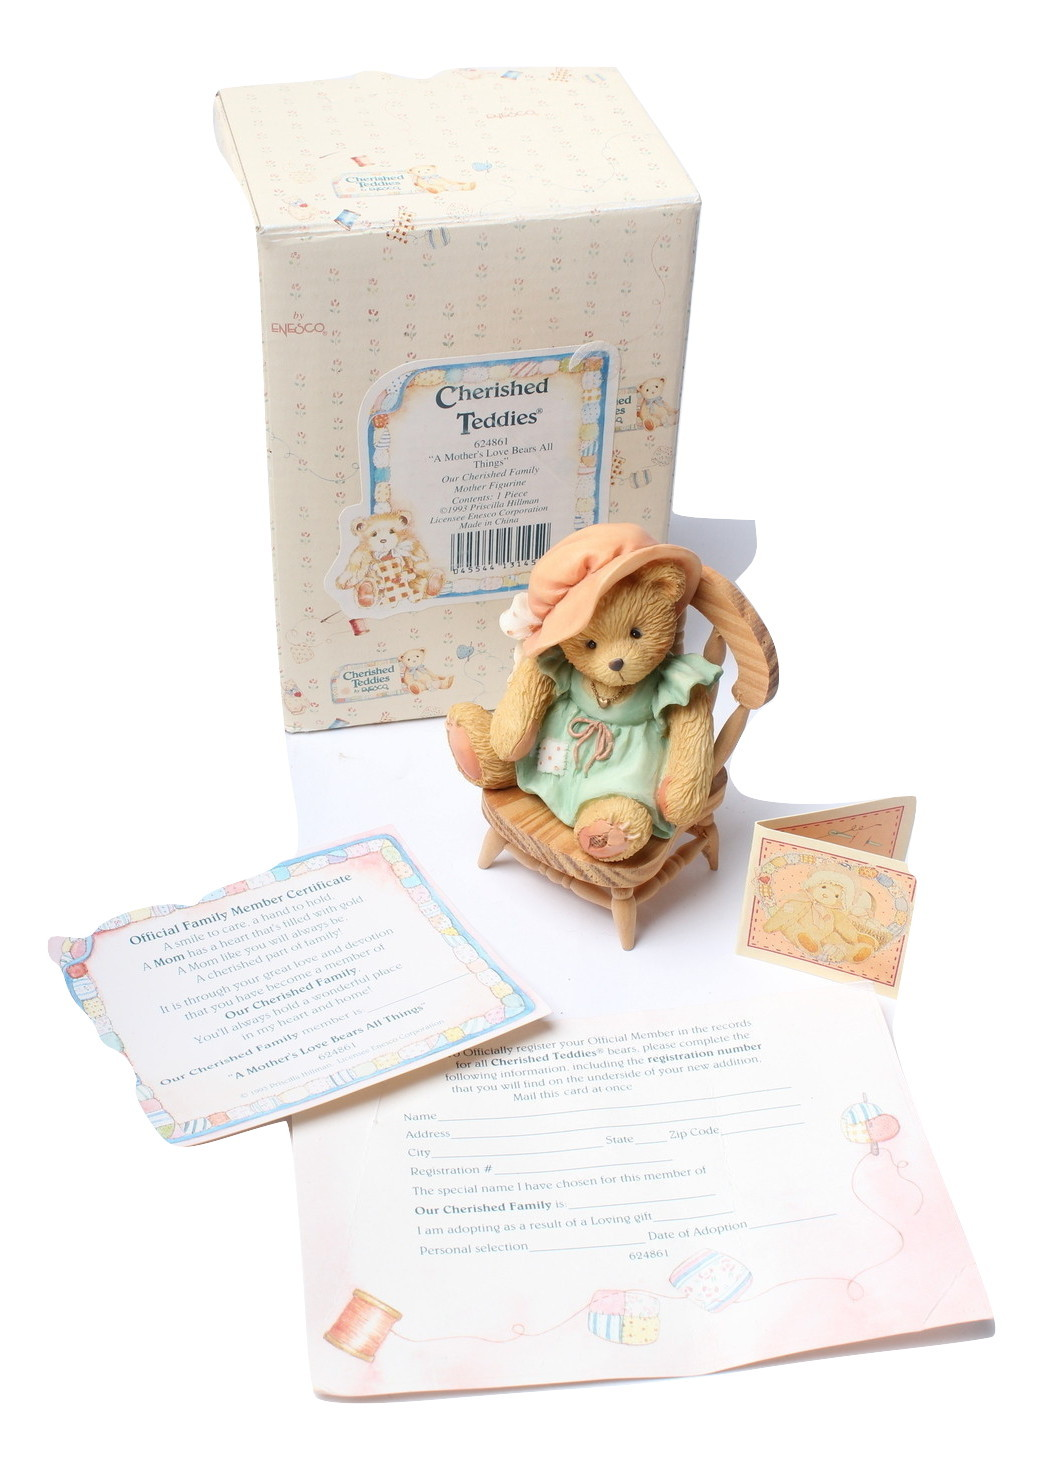 Enesco Cherished Teddies Figurine Our Cherished Family 624861 Mother's Love 1993 - $12.97